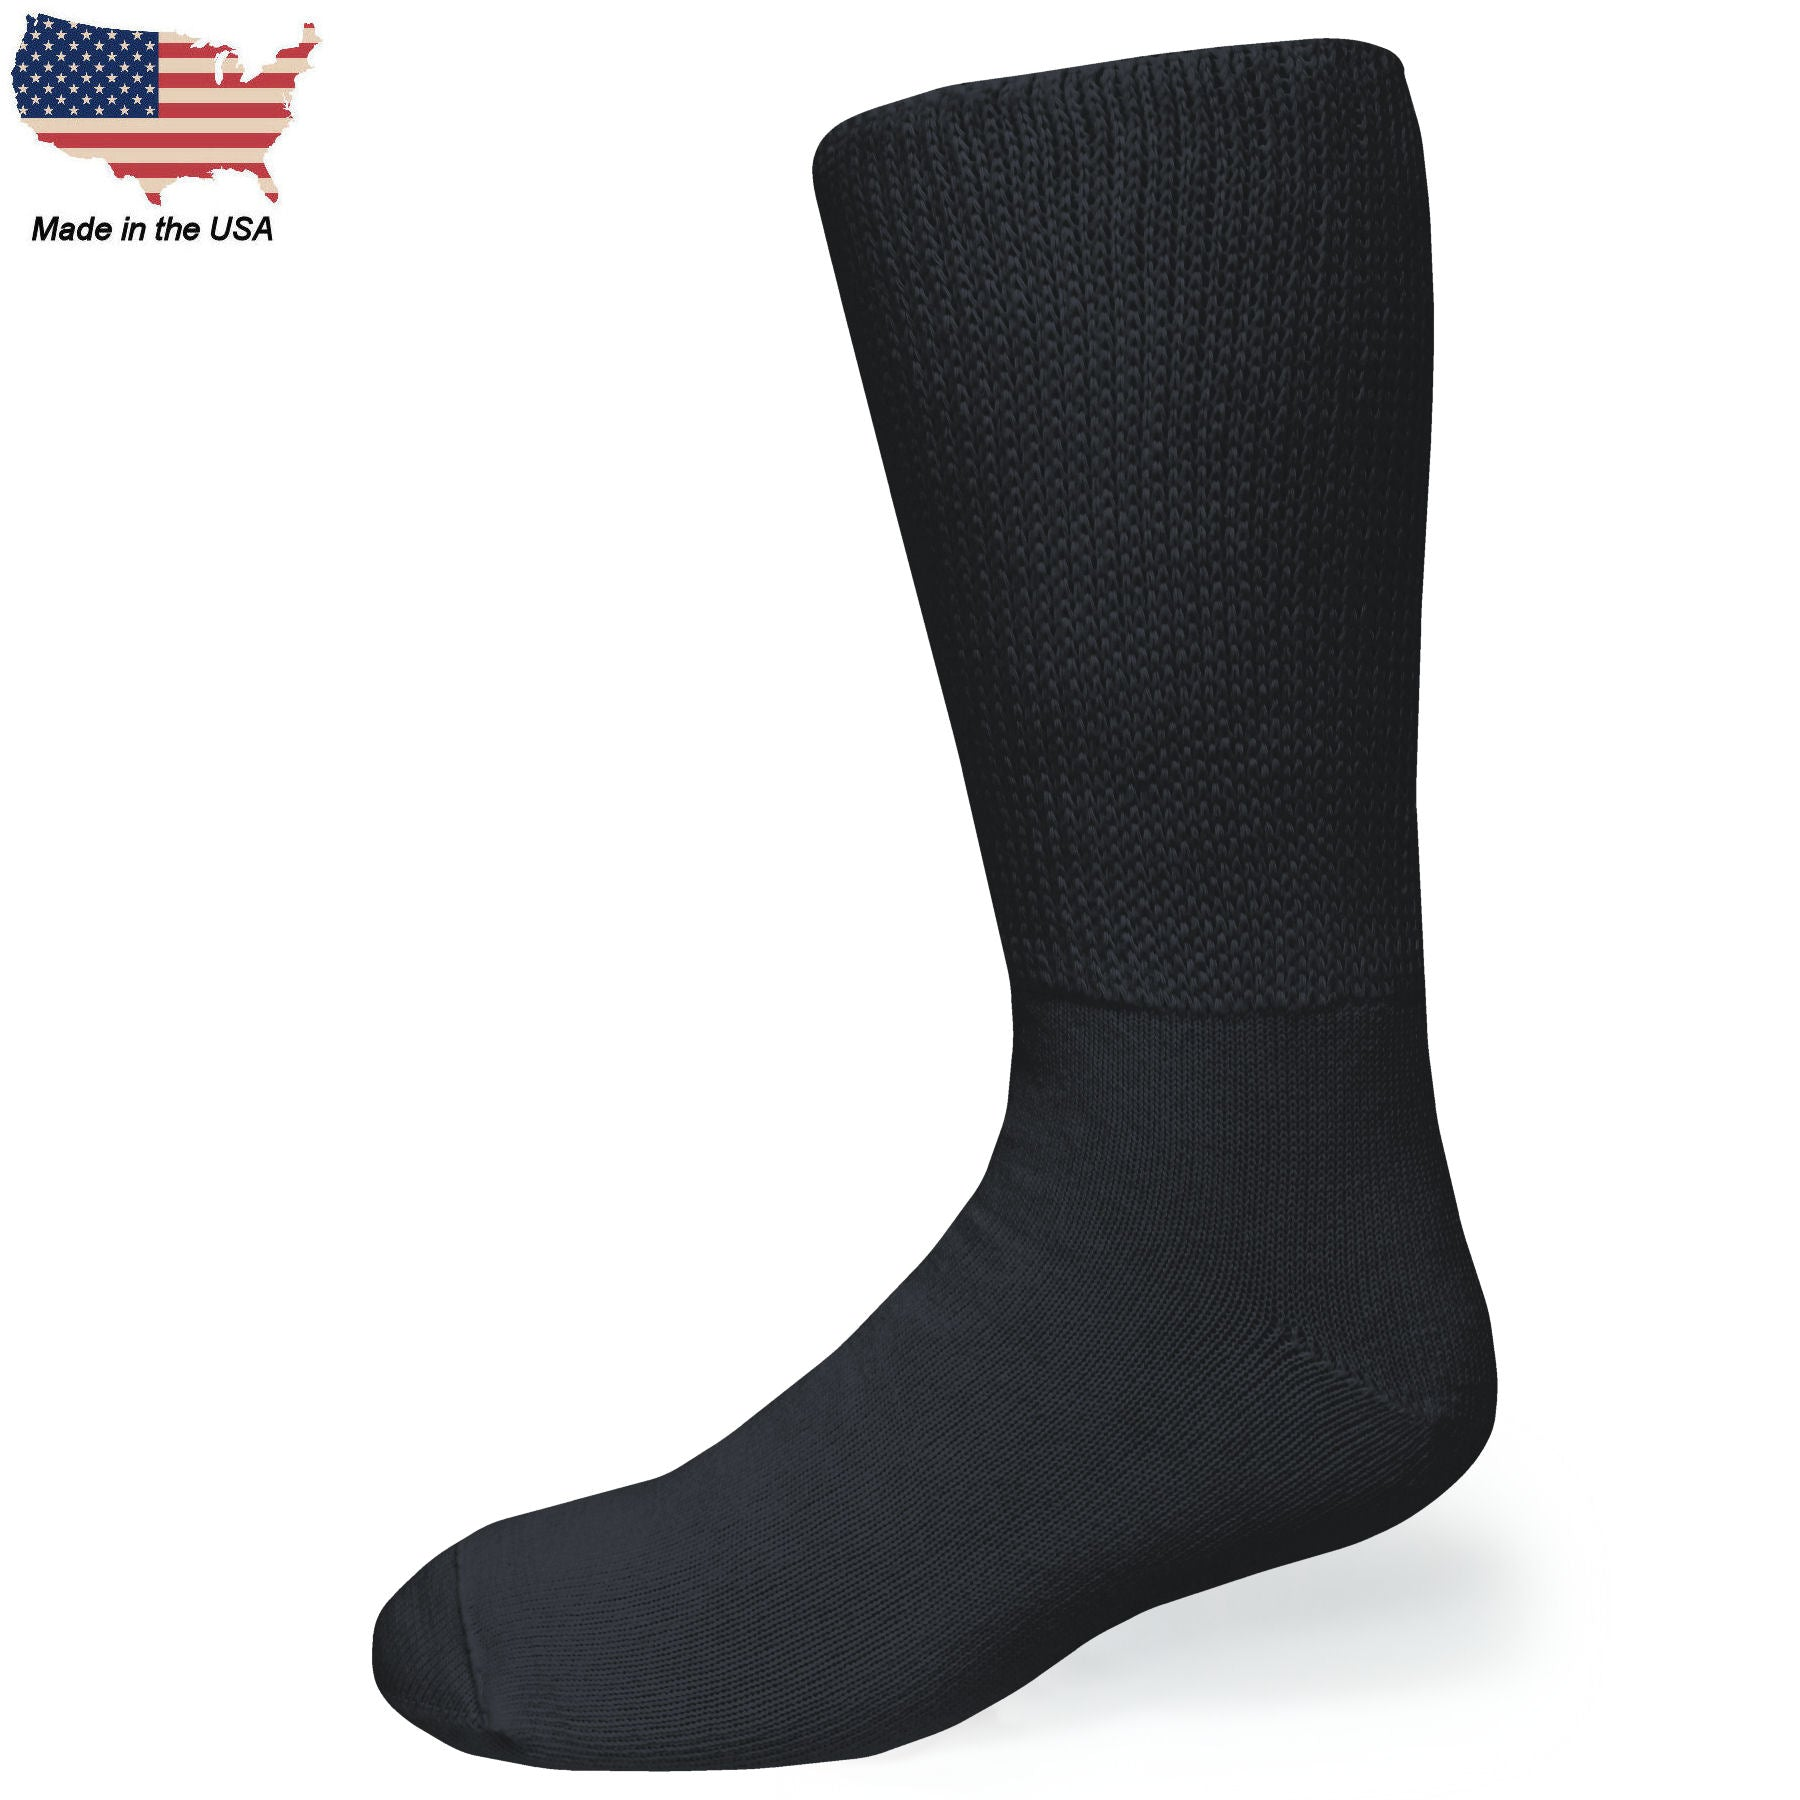 Bigger Big Foot Comfort Cotton Diabetic Black Crew Socks